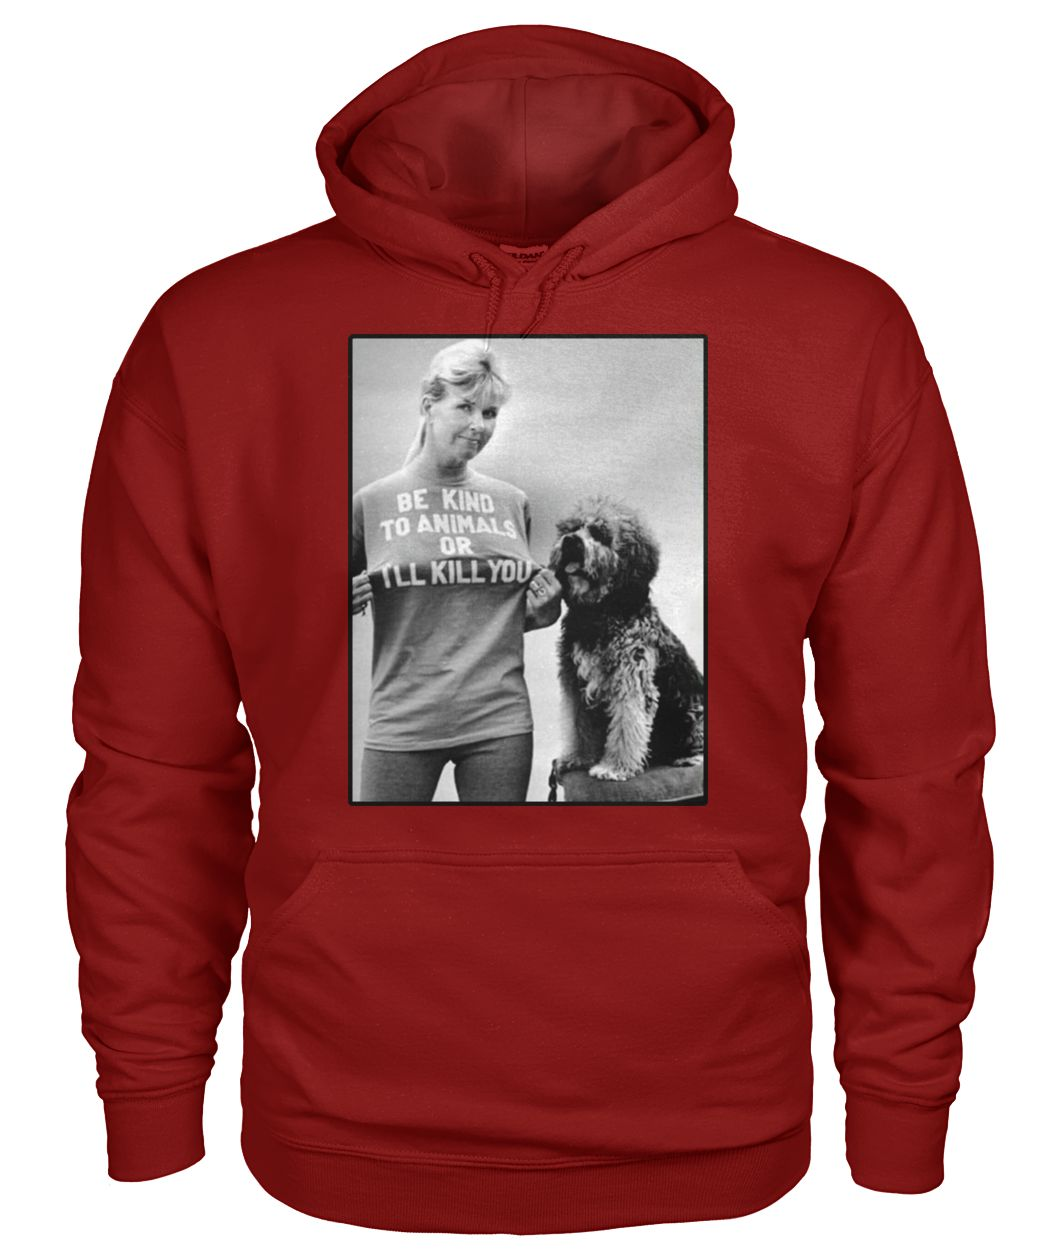 Doris day be kind to animals or I'll kill you gildan hoodie